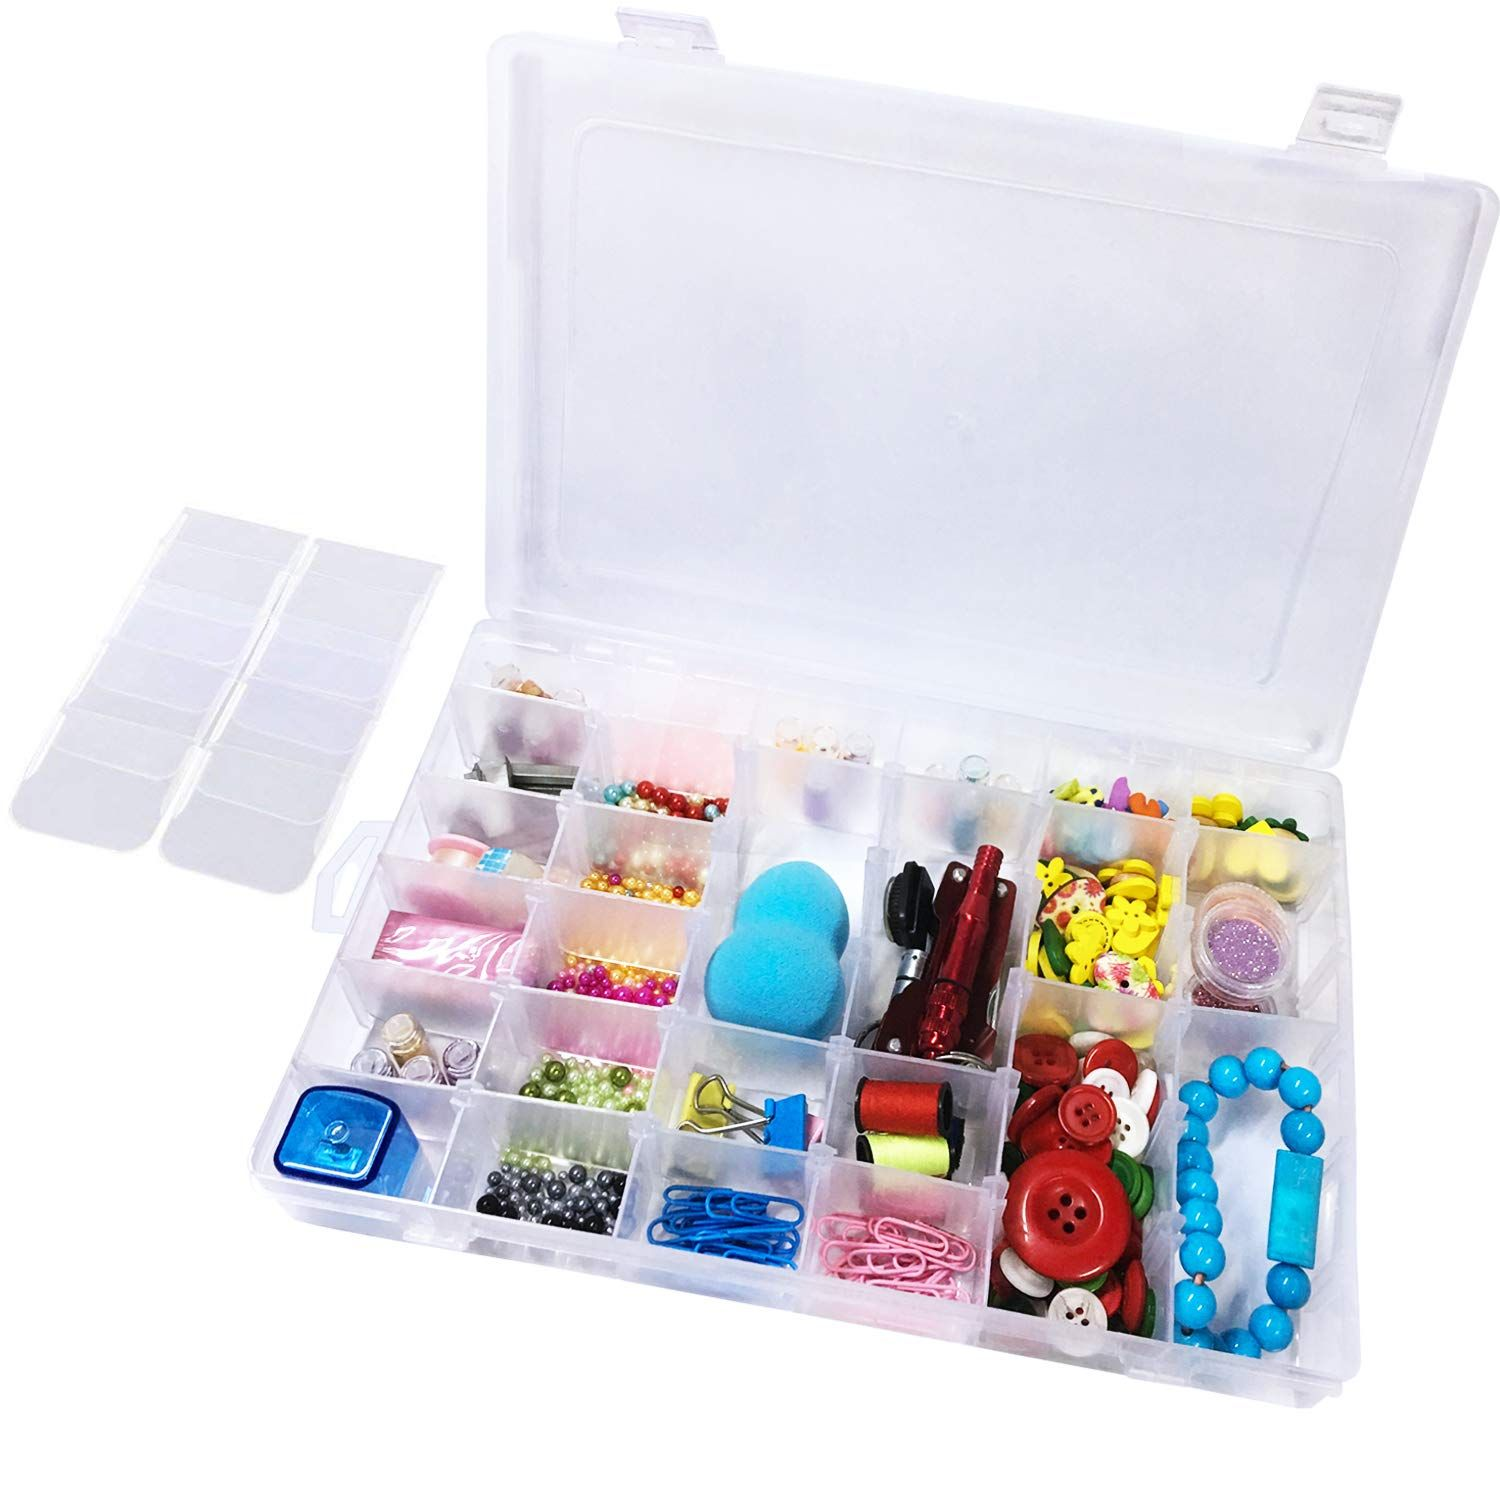 Plastic Organizer Container Box 36 Compartments Jewelry Storage Box with Adjustable Dividers